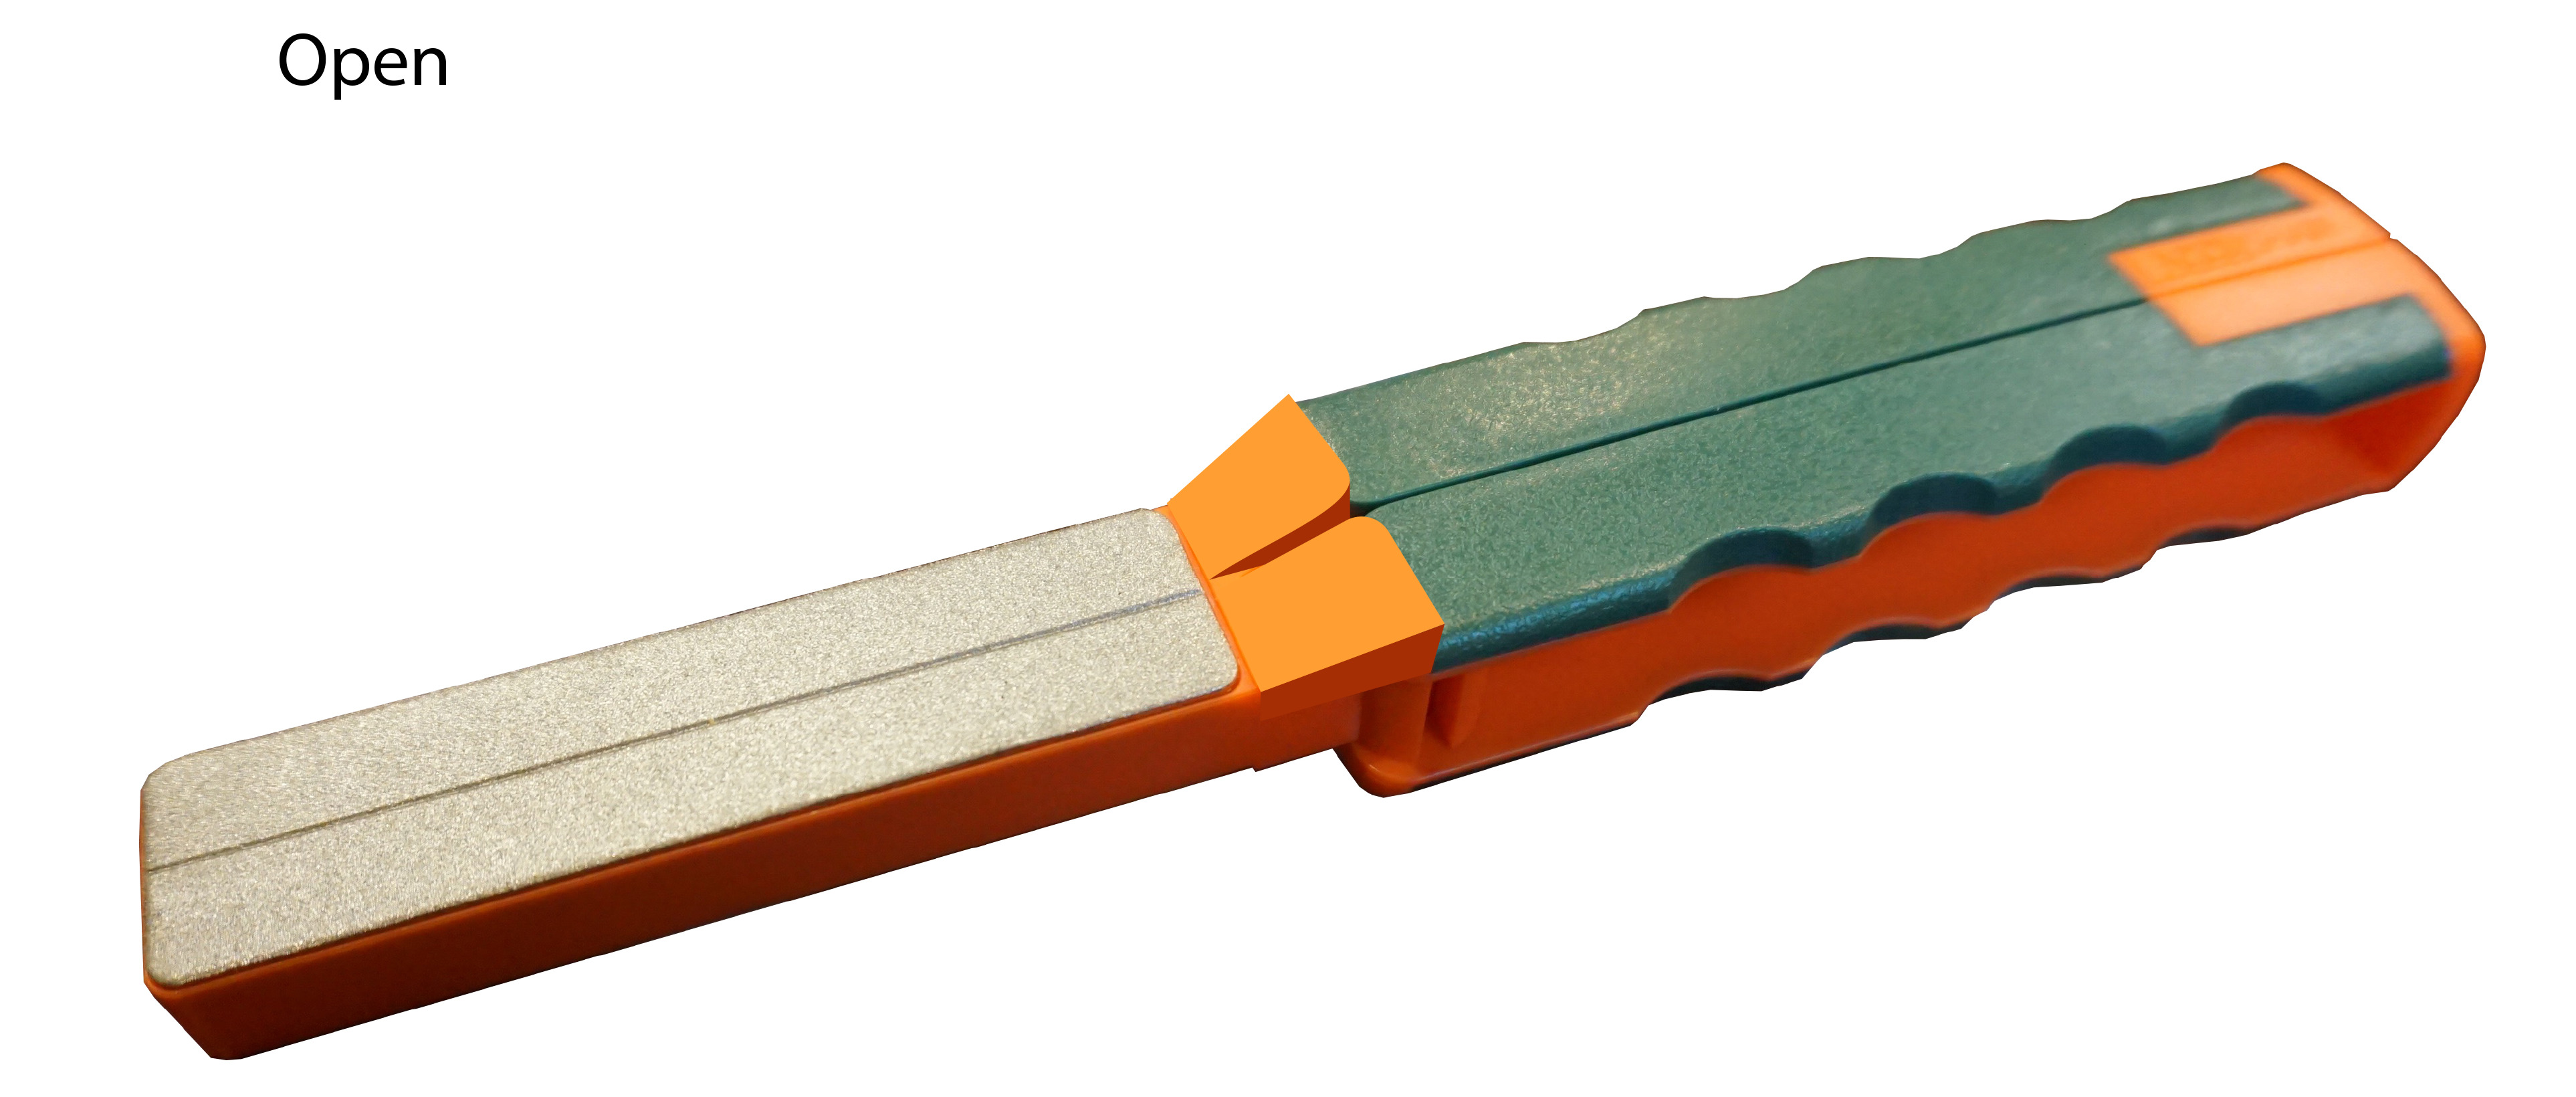 AccuSharp 077C Diamond Paddle Folding Fine, Coarse Diamond Sharpener Gray/Orange Overmolded Rubber Handle